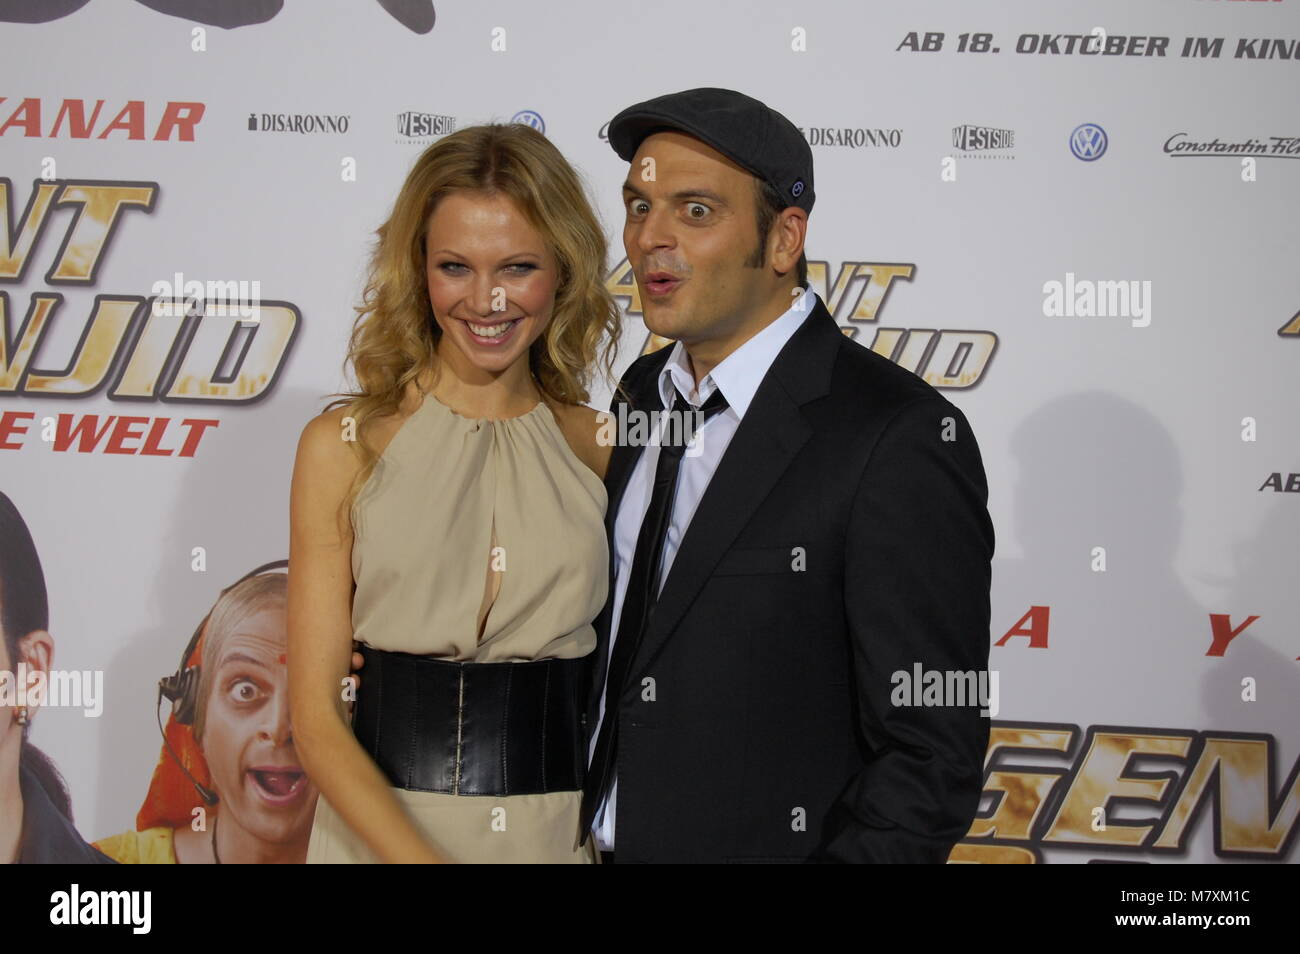 Birte Glang and Kaya Yanar attend the 'Agent Ranjid' Germany Premiere on October 17, 2012 in Cologne, Germany. Stock Photo